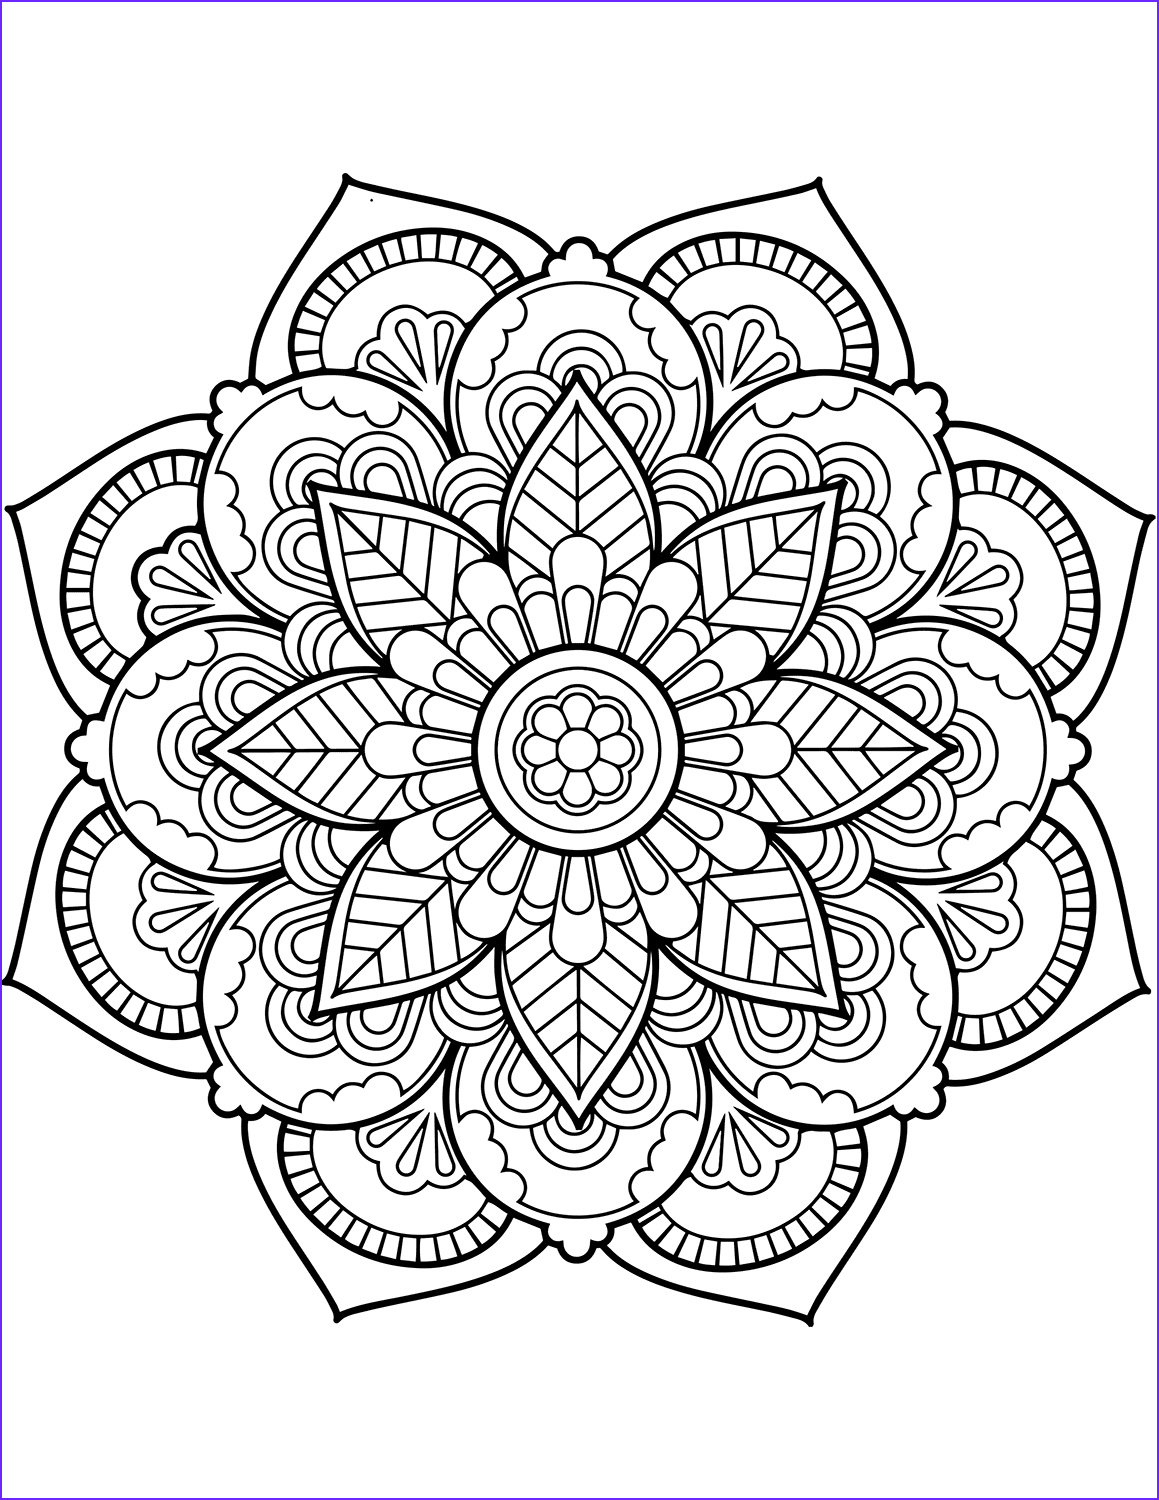 Printable Mandala Coloring Pages Beautiful Collection Flower Mandala Coloring Pages Best Coloring Pages for Kids